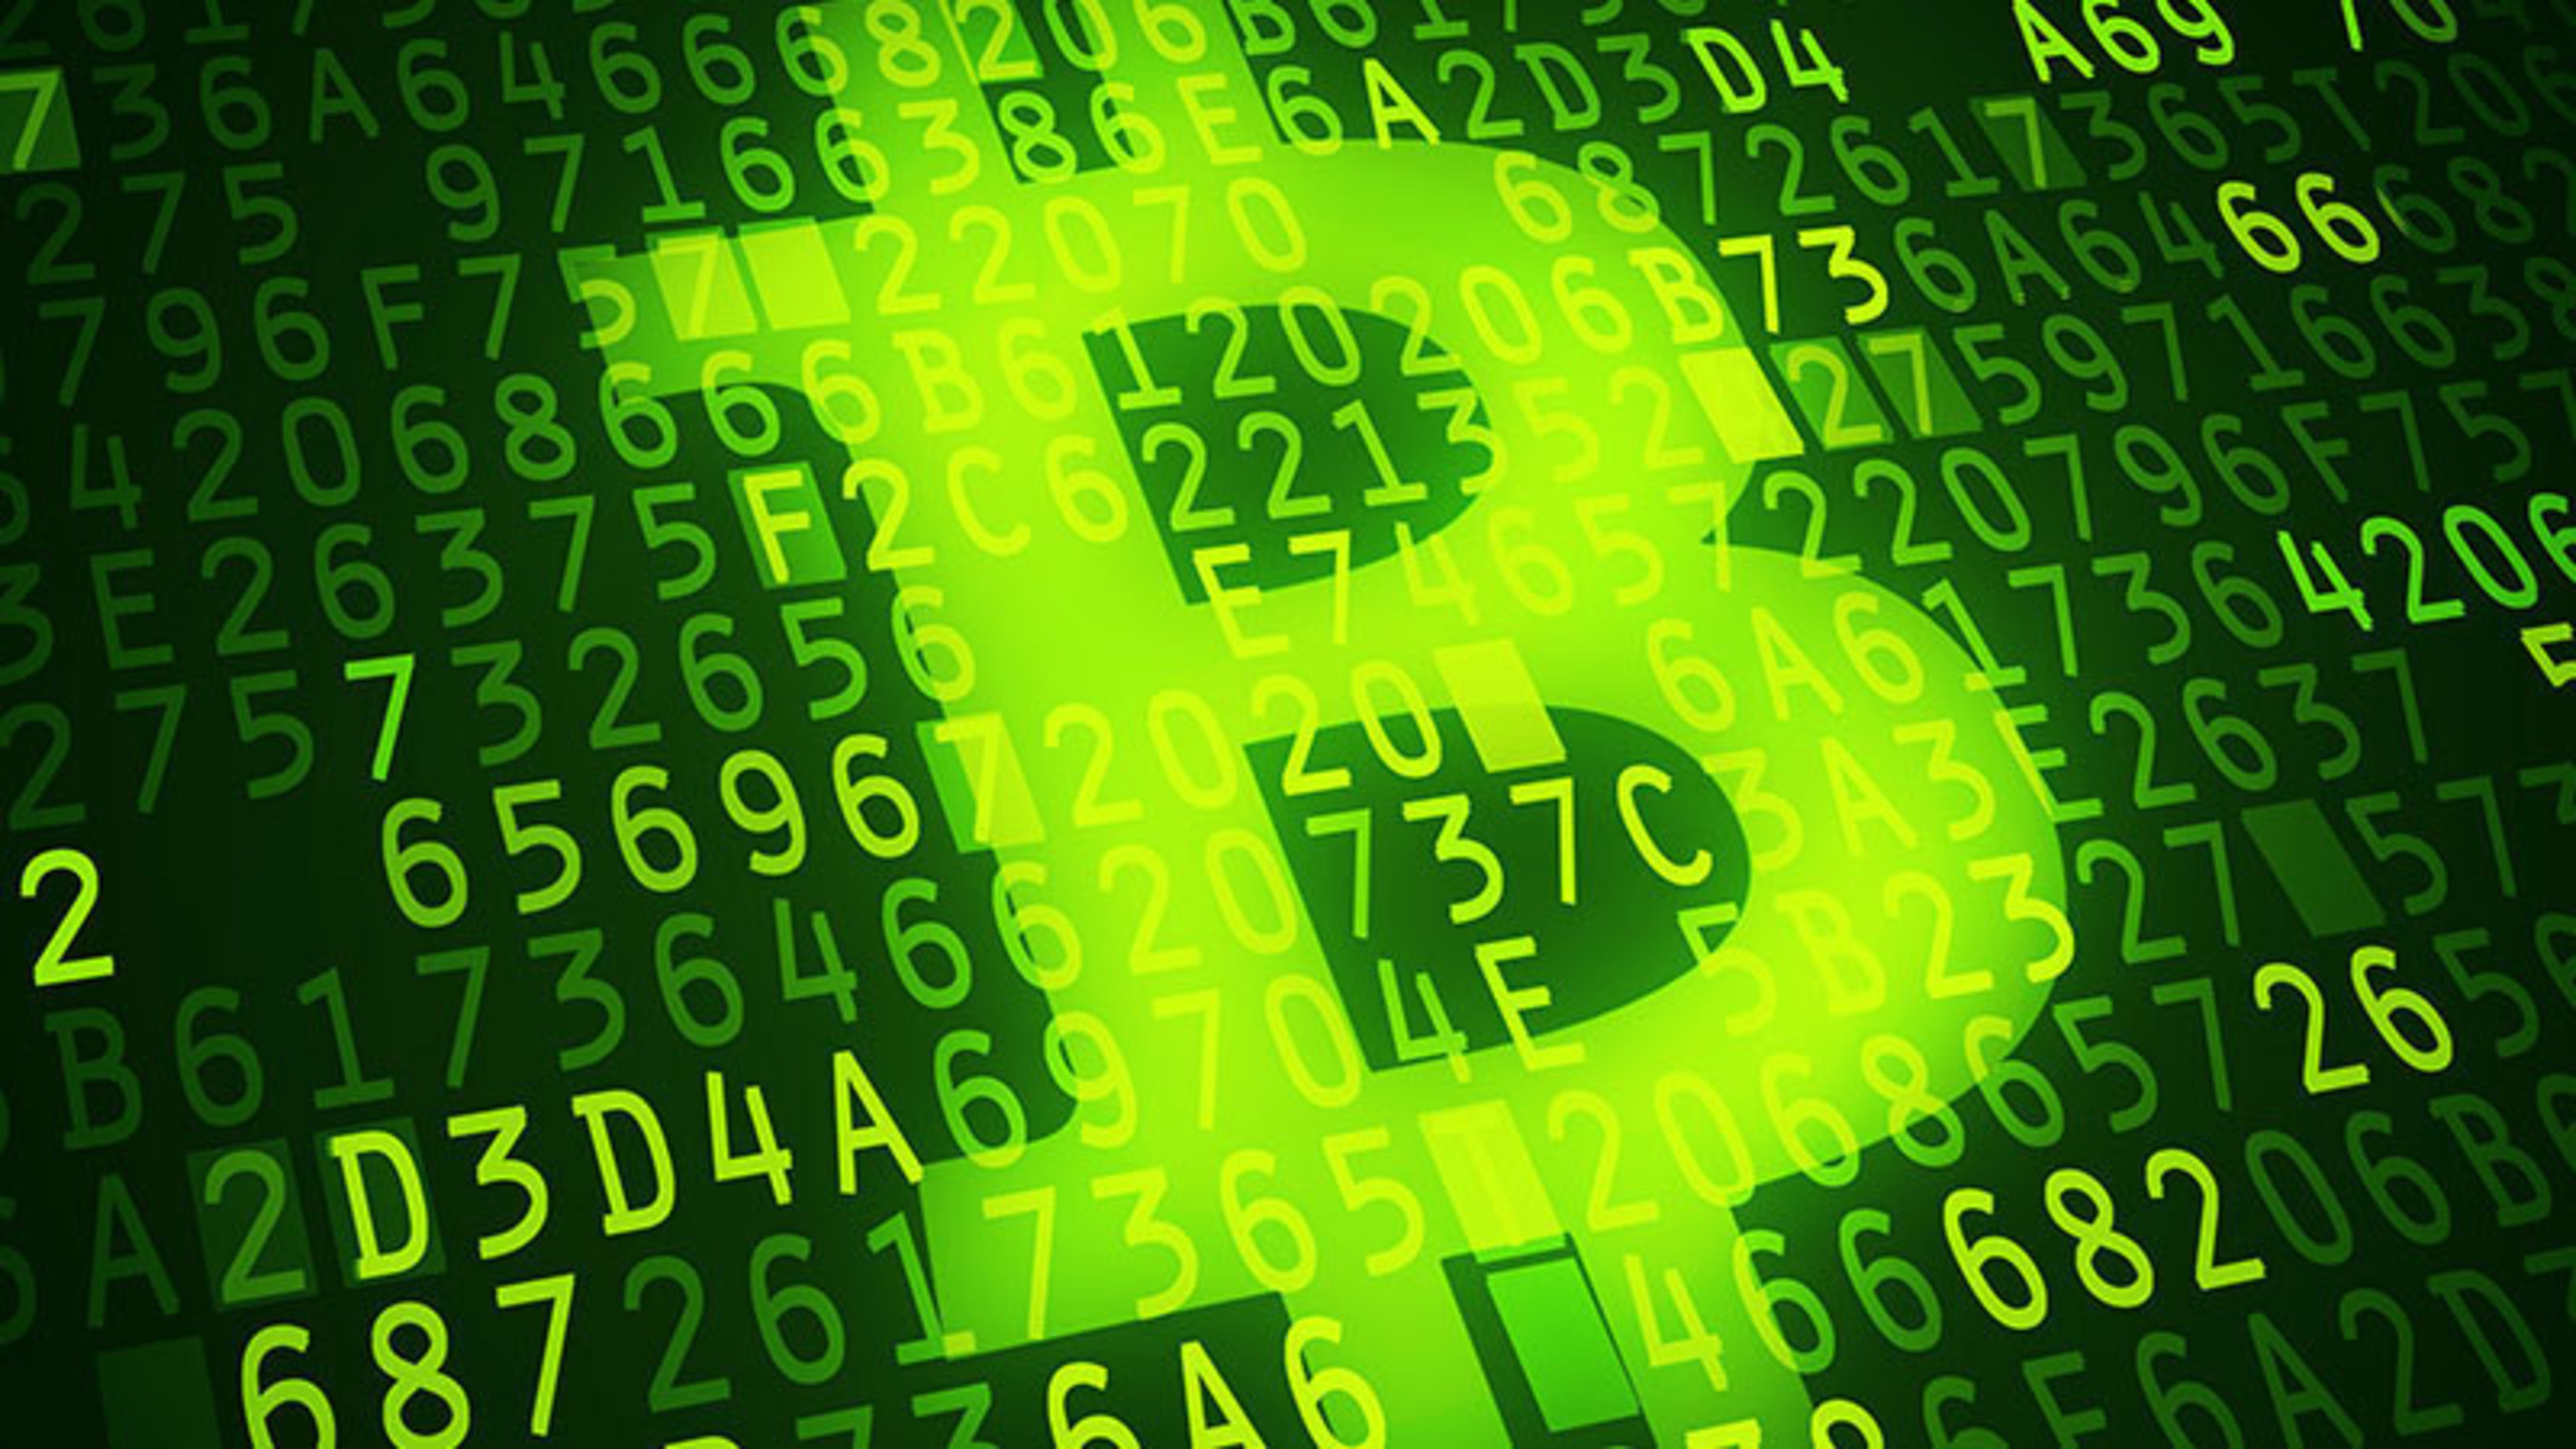 The Future of Bitcoin and Cyber Security is a webinar offered by the Stanford Center for Professional Development. It will take place Tuesday, August 25th from 10-11 am Pacific/1-2 pm Eastern. It is free and open to the public.